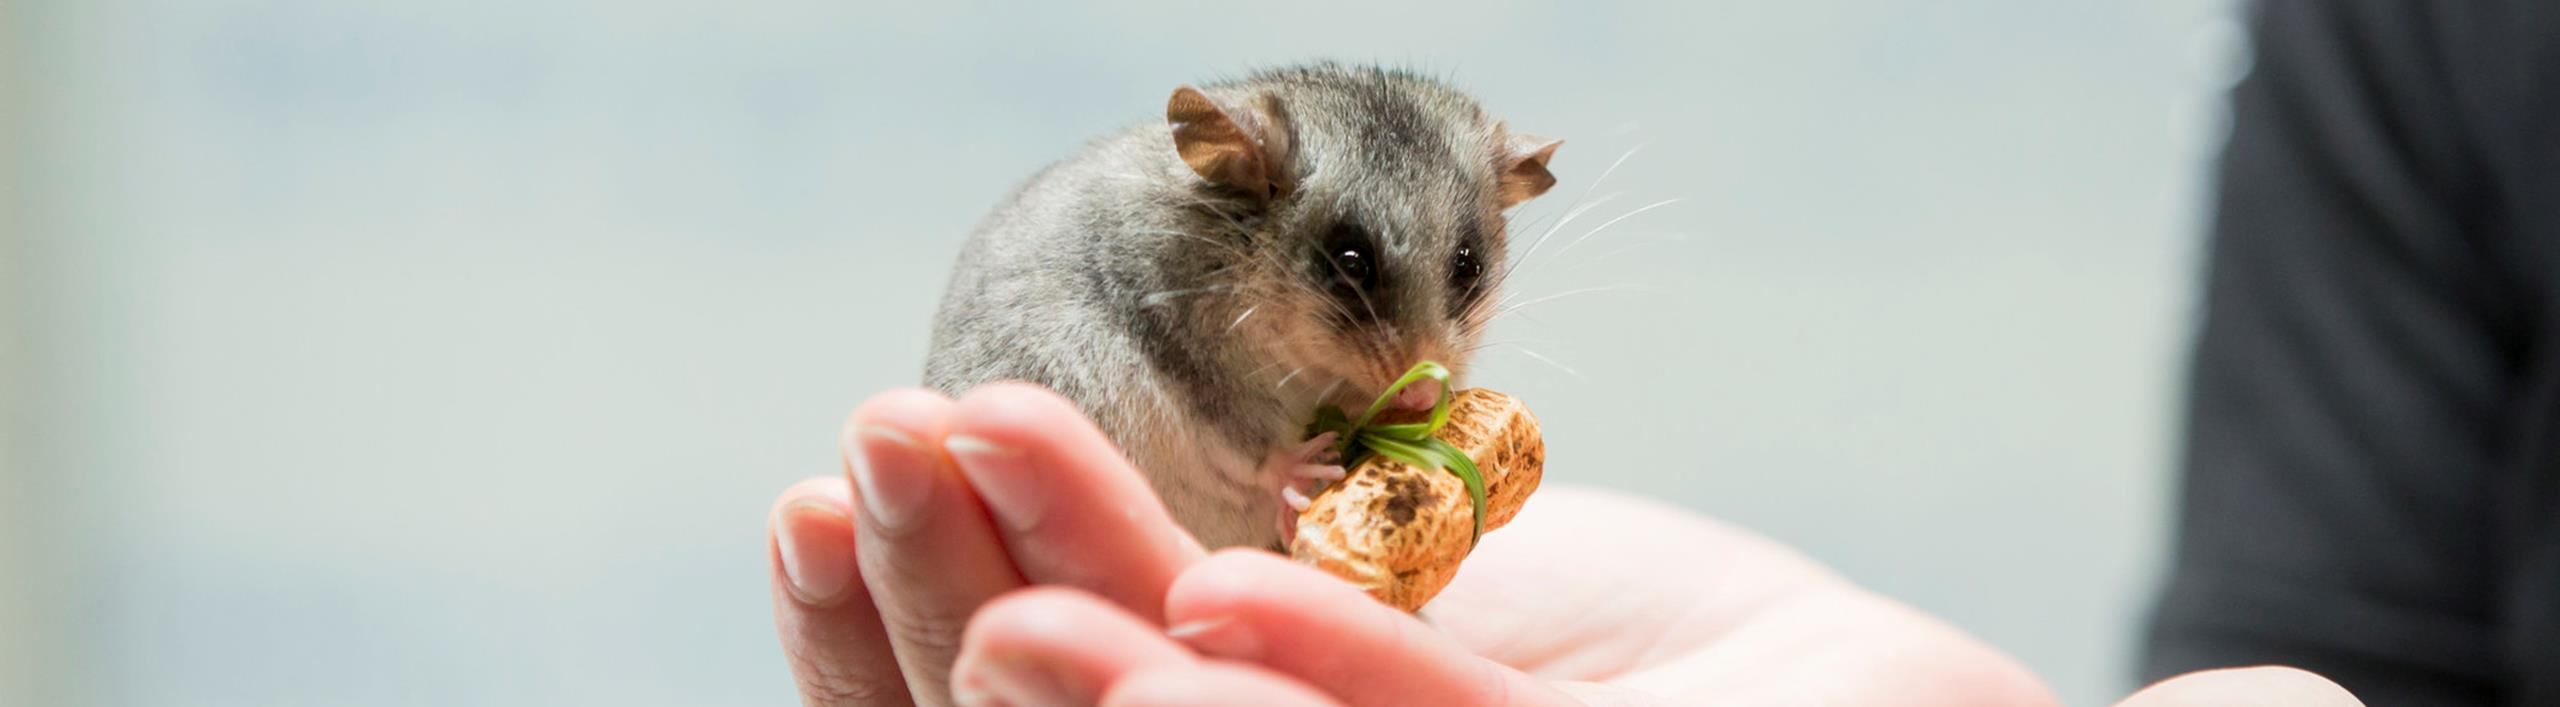 Close up of a Mountain Pygmy Possum sitting on a keepers hand. It is holding a peanut with a grass bow ties around it.